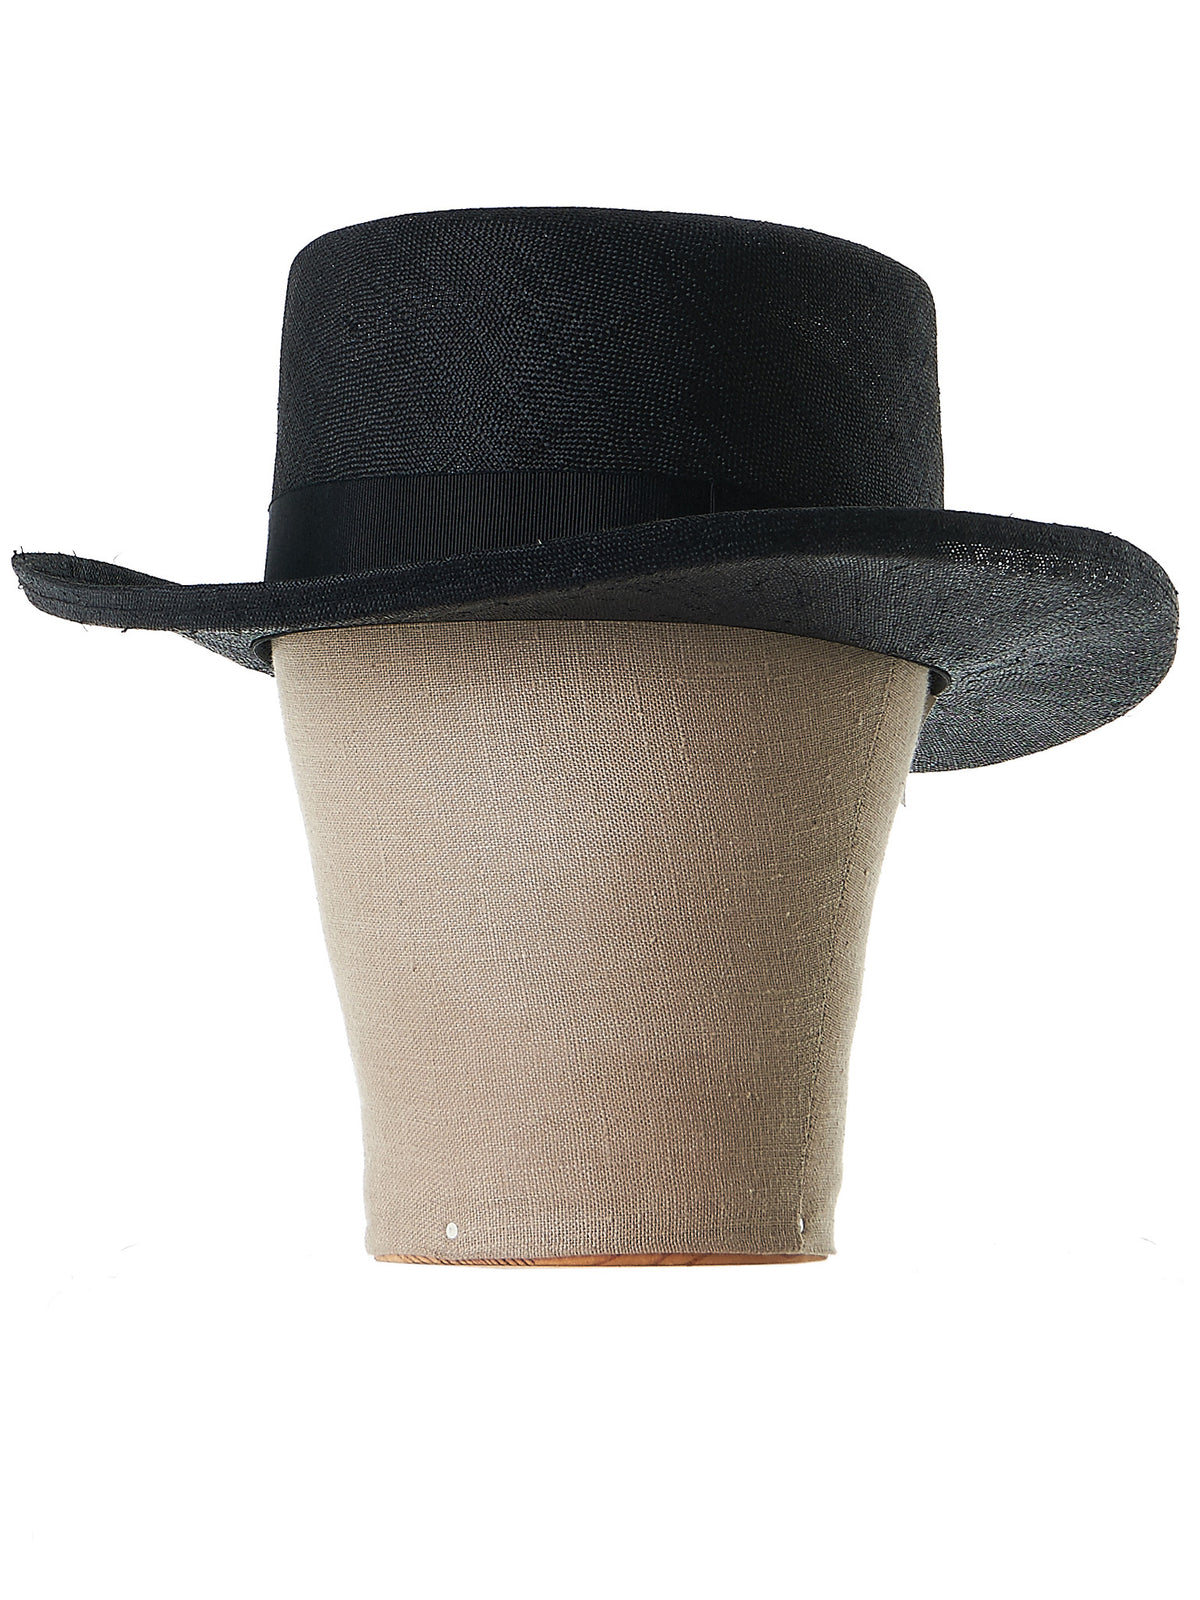 Jim Karakusa 'Ring' Hat (CD17S-1303-BLACK) - H. Lorenzo